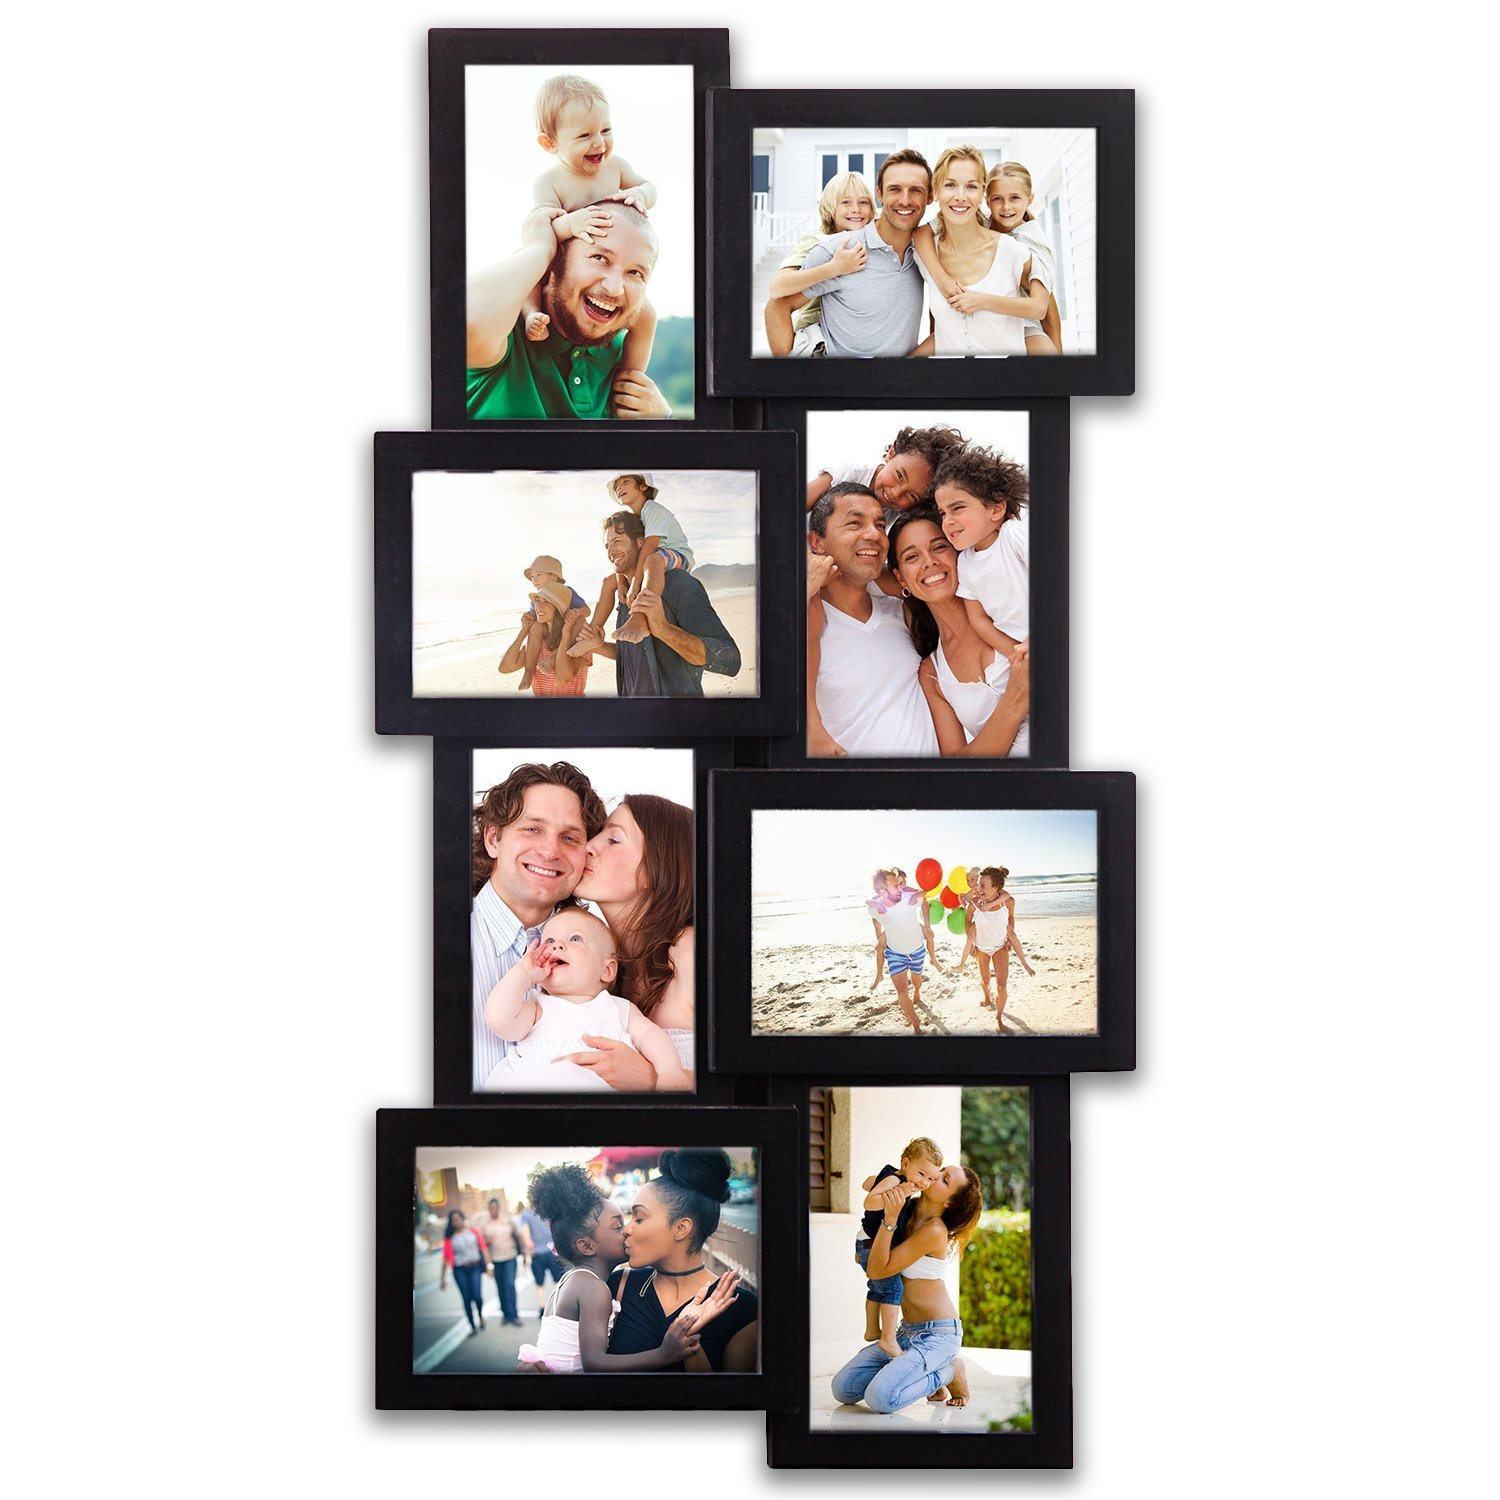 8 Opening Gallery Collage Wall Hanging Frame Set 12 by 23'' inch For 4 x 6'' inch Photo, 8 Sockets, Black Edge | By Hello Laura